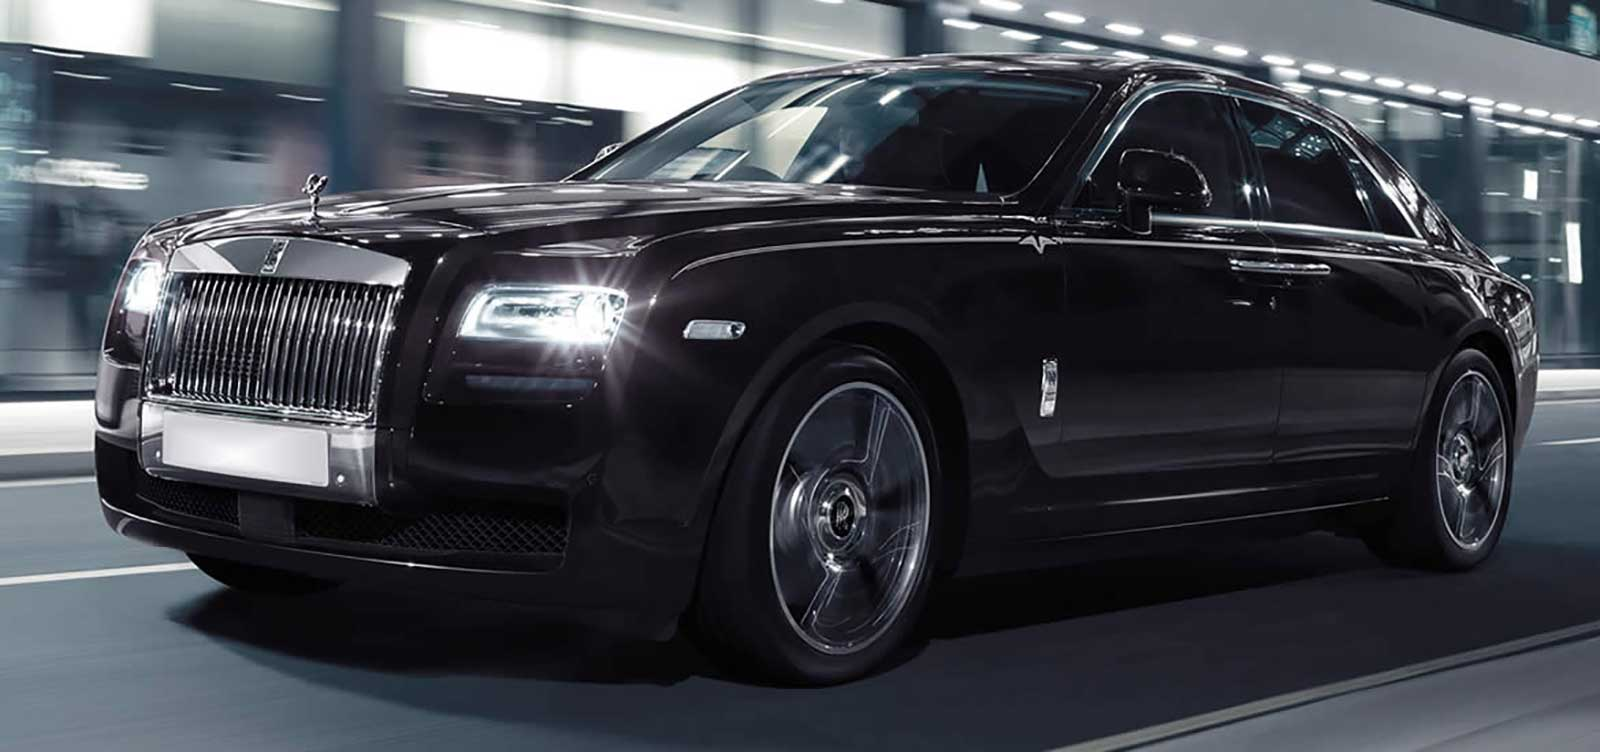 Black Rolls Royce Ghost | SPM Hire